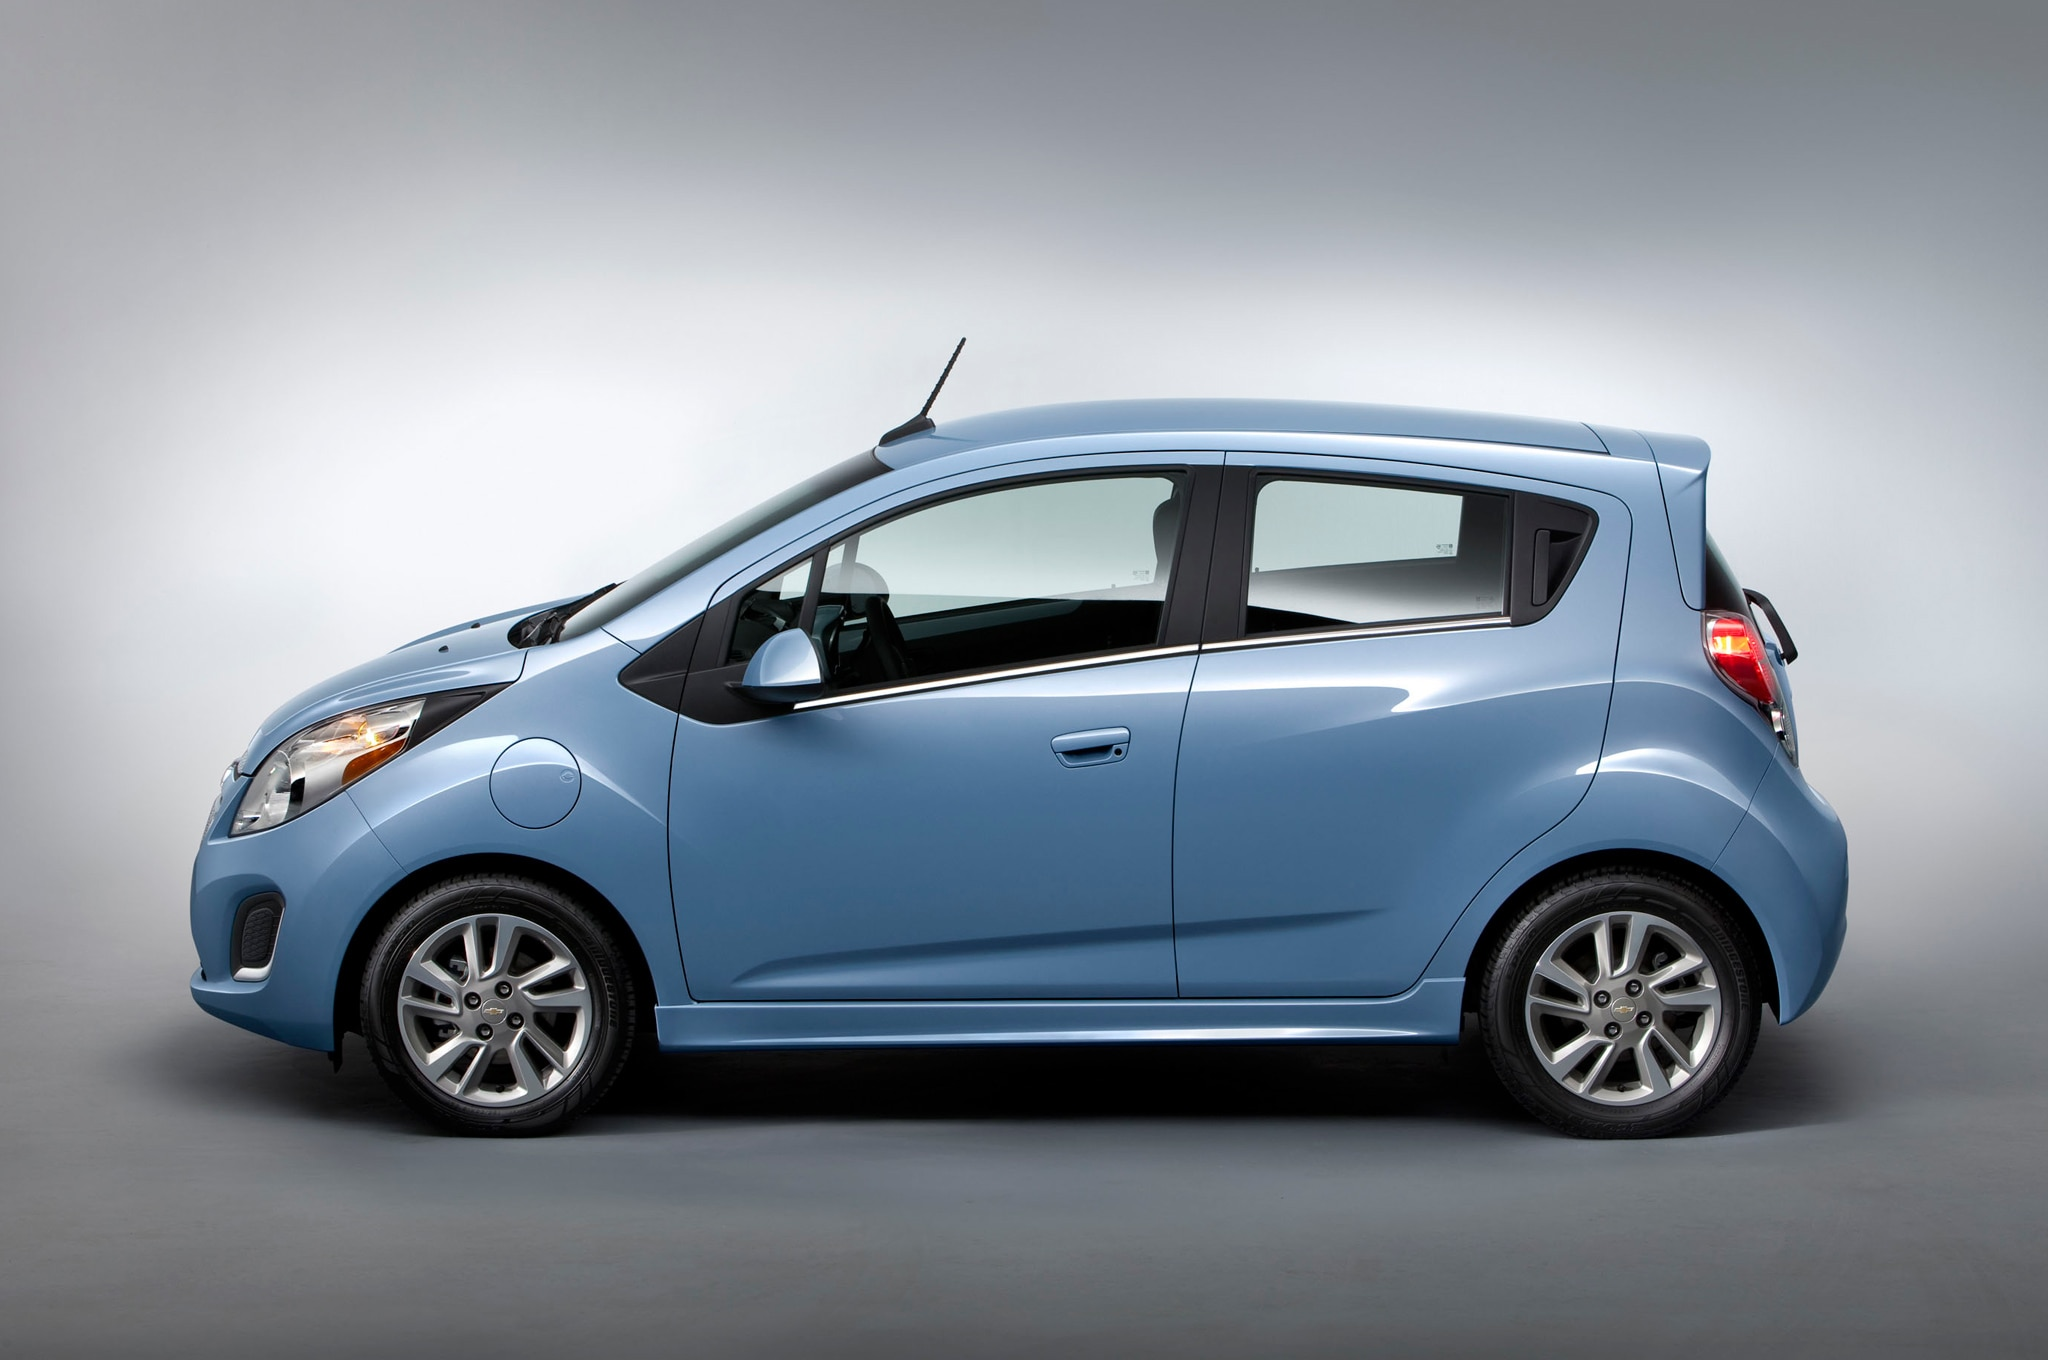 2014 Chevrolet Spark EV Left Side 11